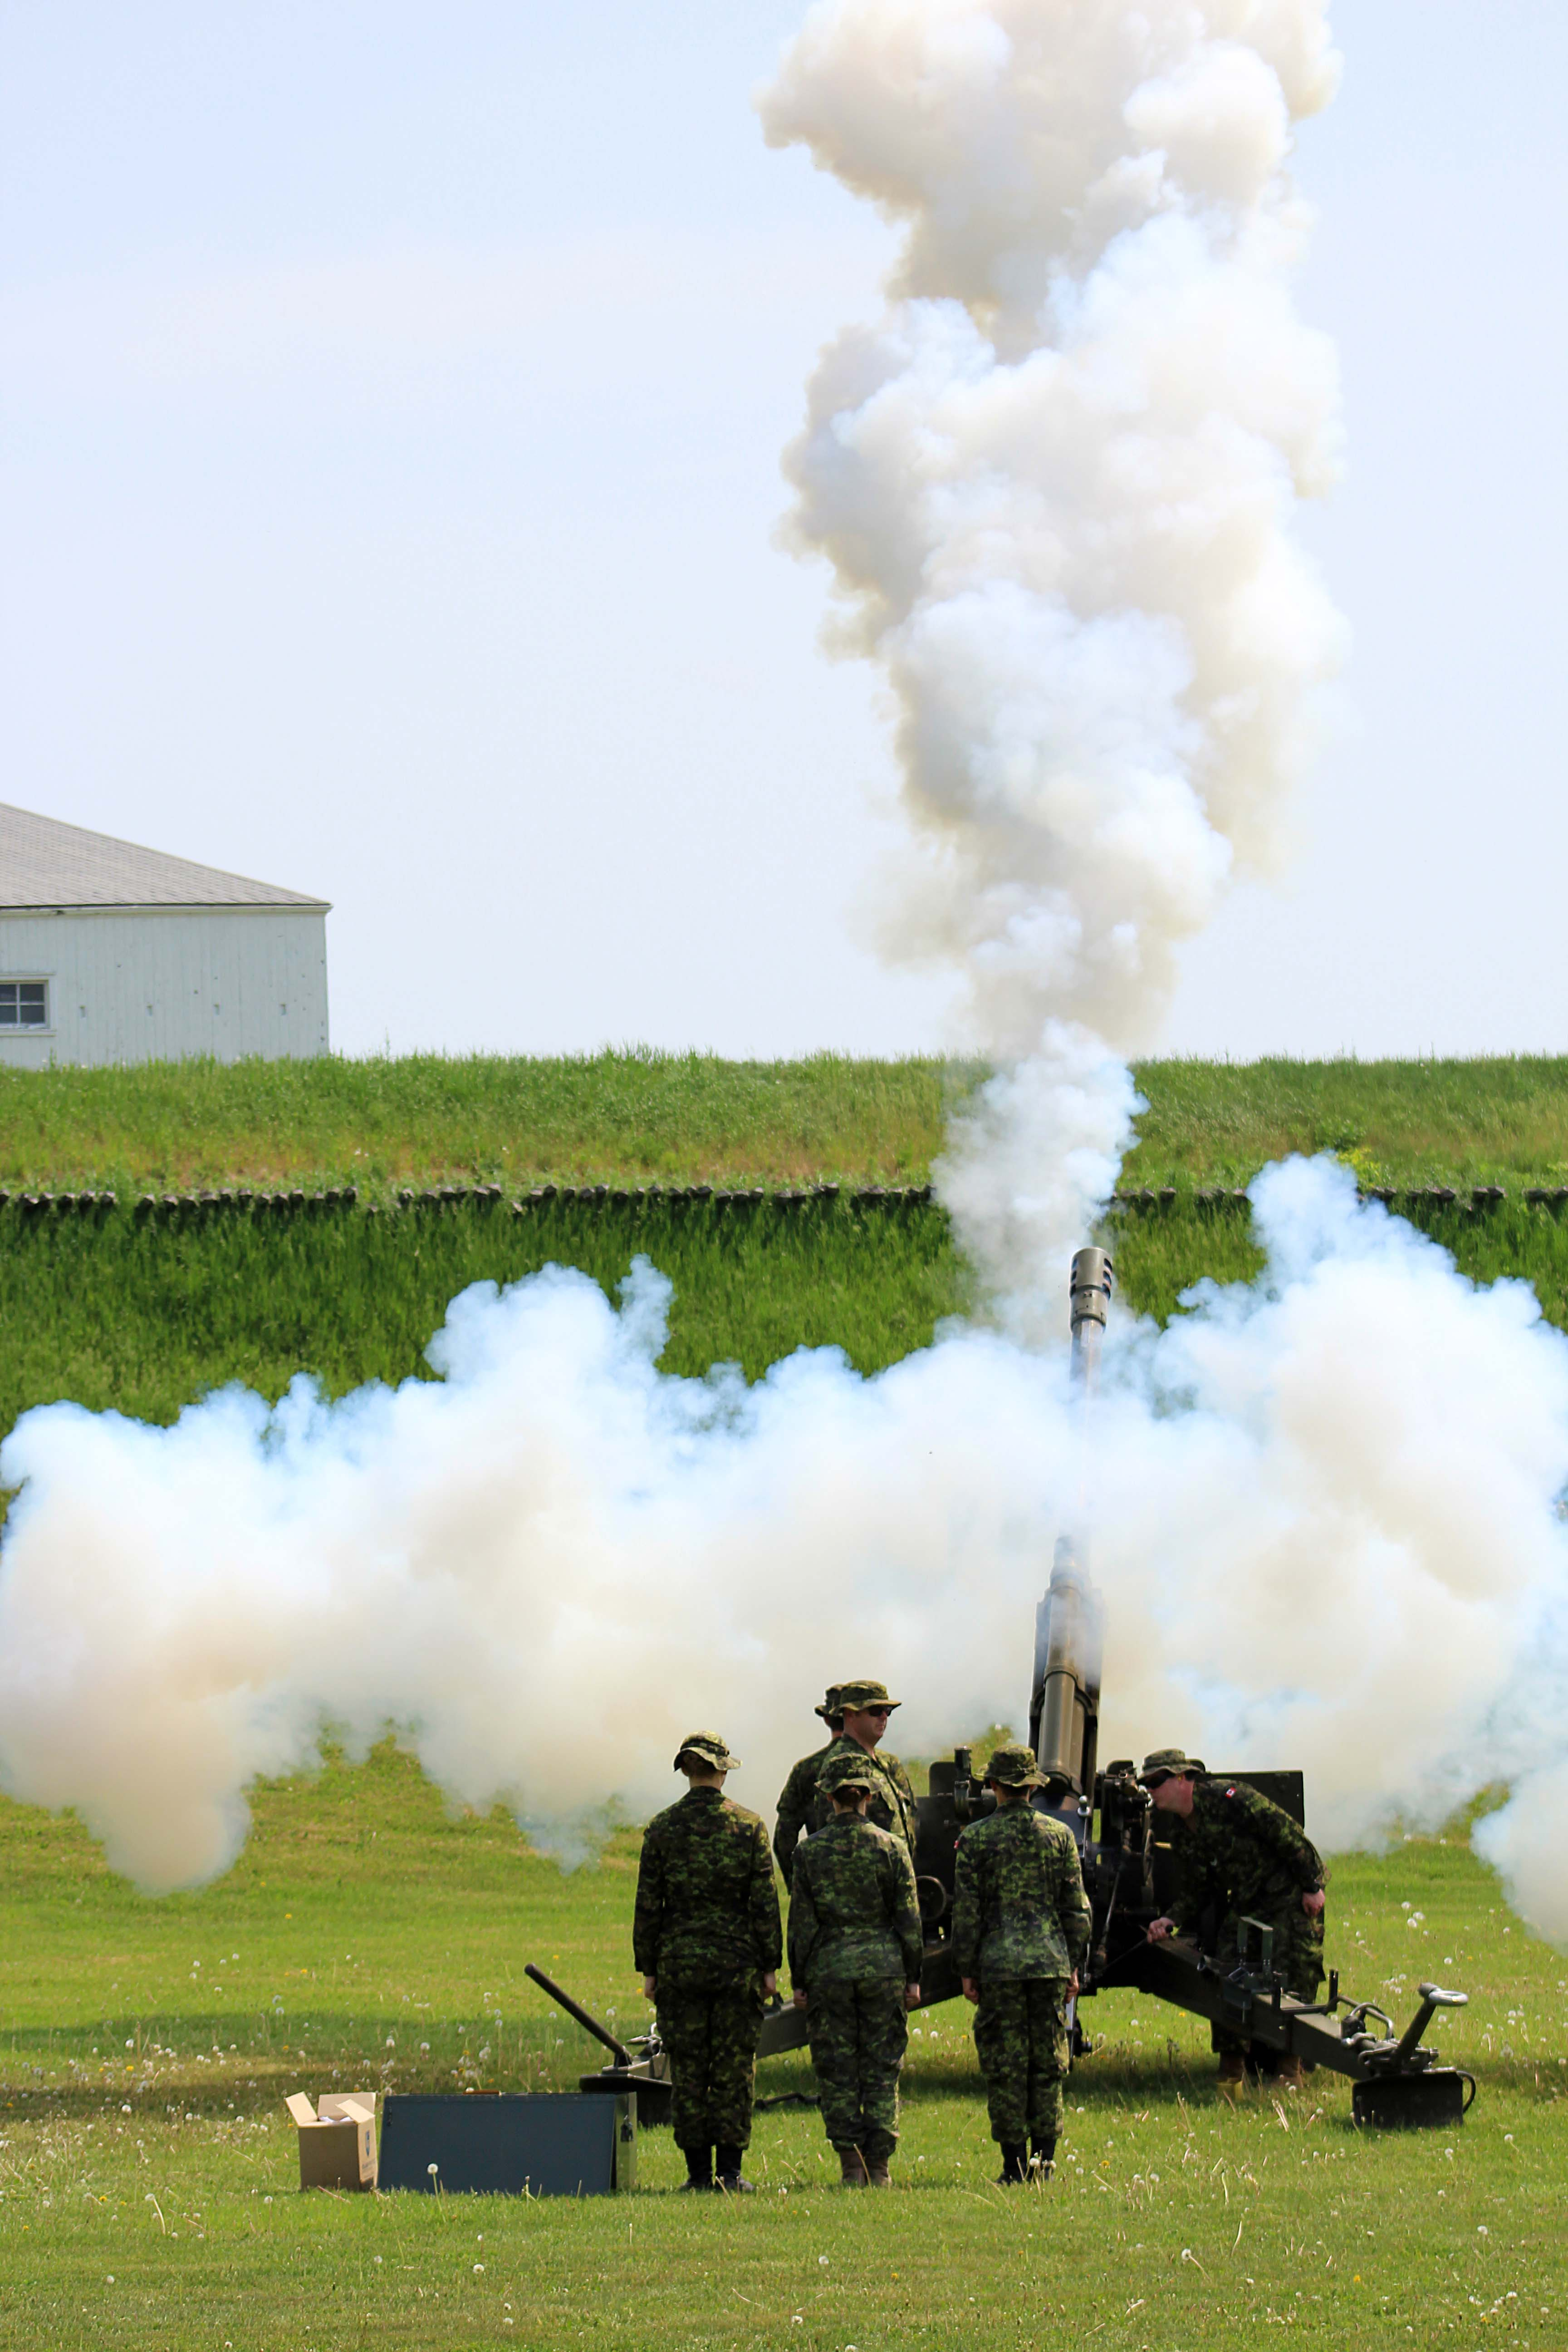 Members of the 30th Field Artillery Regiment RCA fire the C3 105mm Howitzer after a moment of silence at Fort Wellington National Historic Site. The soldiers also fired a 19th century cannon at Fort Wellington, Ontario on May 28, after a cenotaph ceremony commemorating the Fenian Raids.